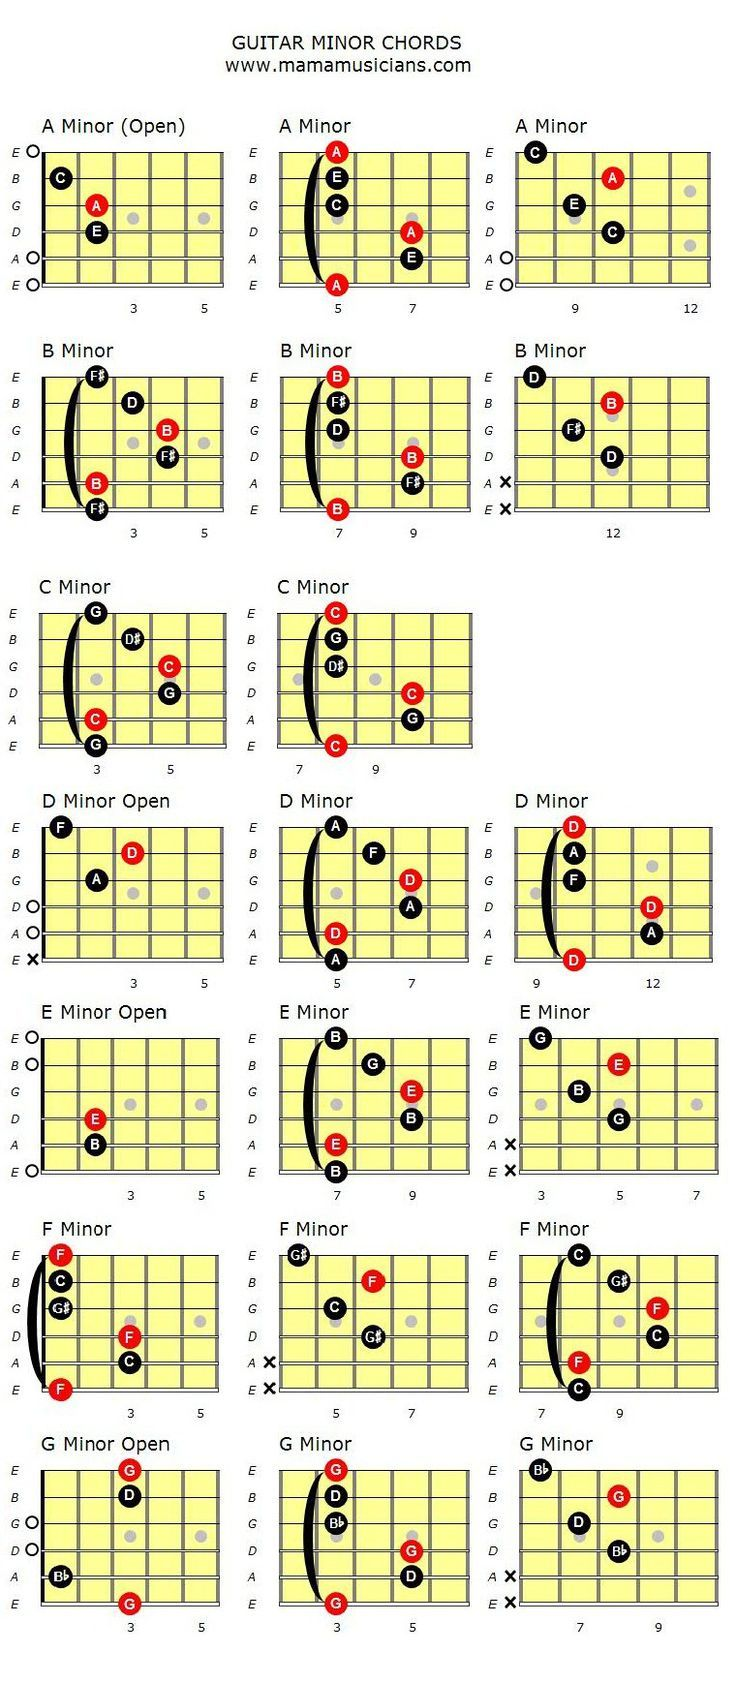 Best way to learn Jazz guitar for a beginner? | The Gear Page